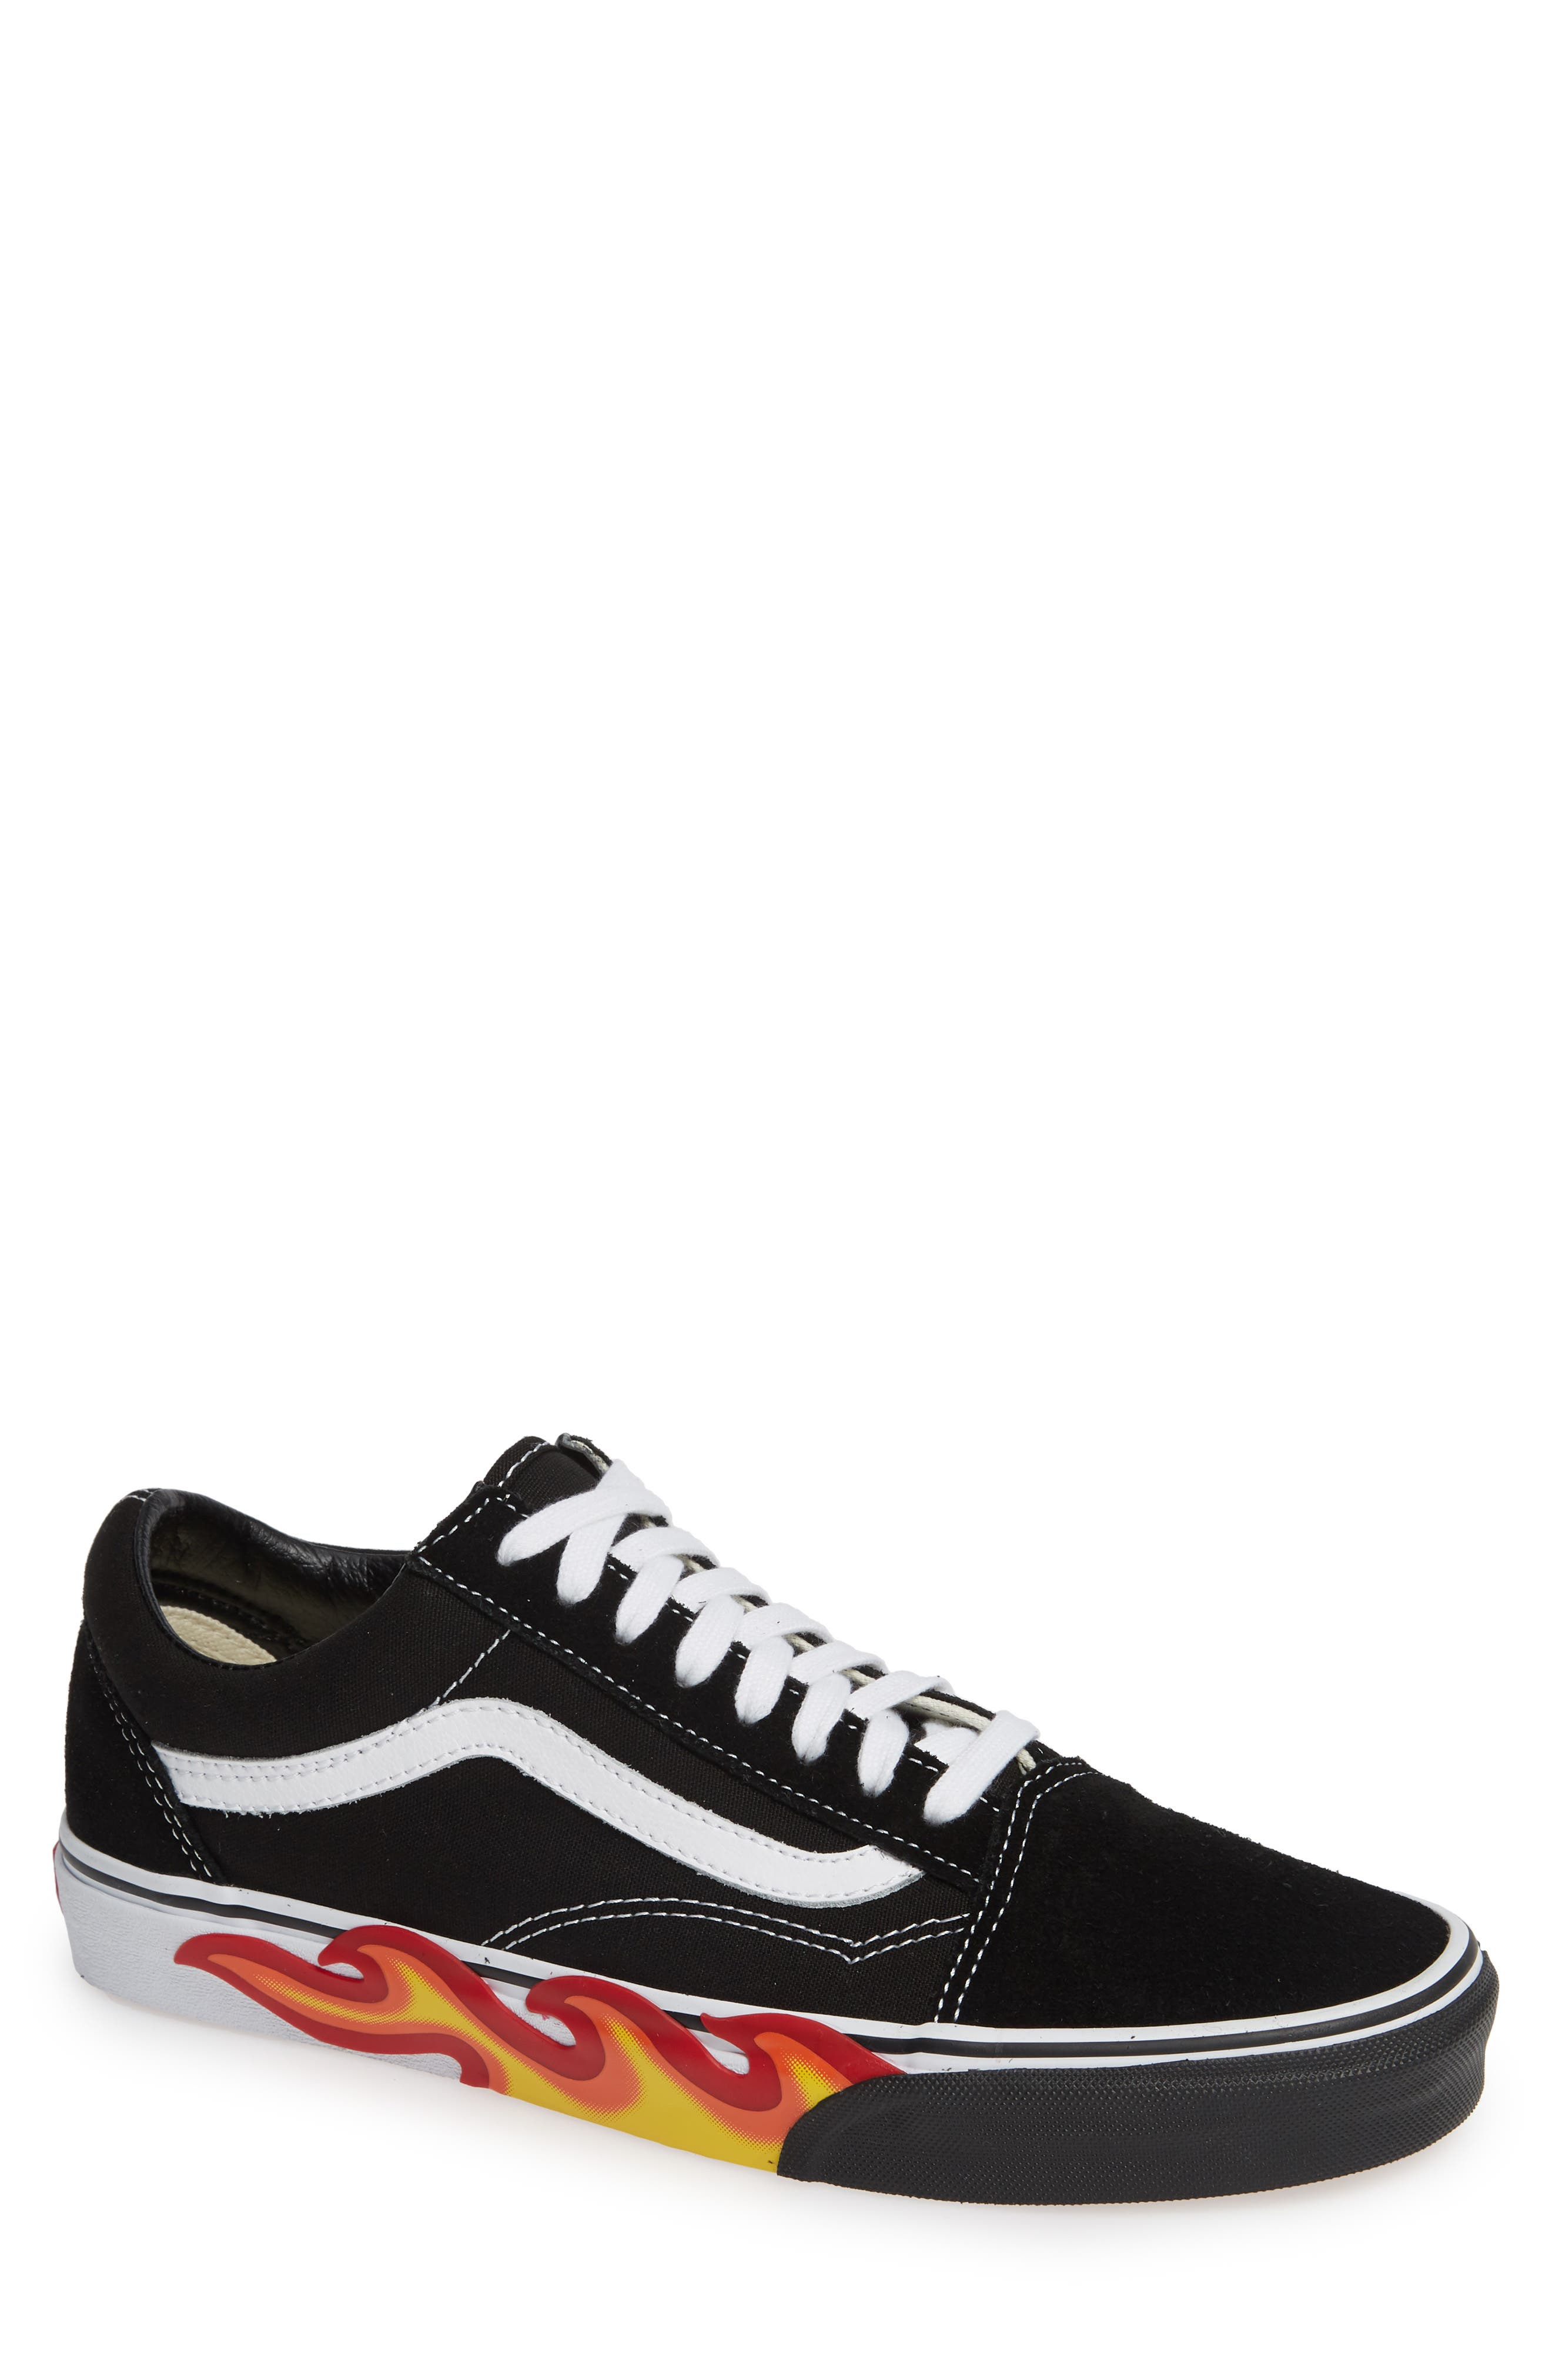 Old Skool Sneaker,                         Main,                         color, 010